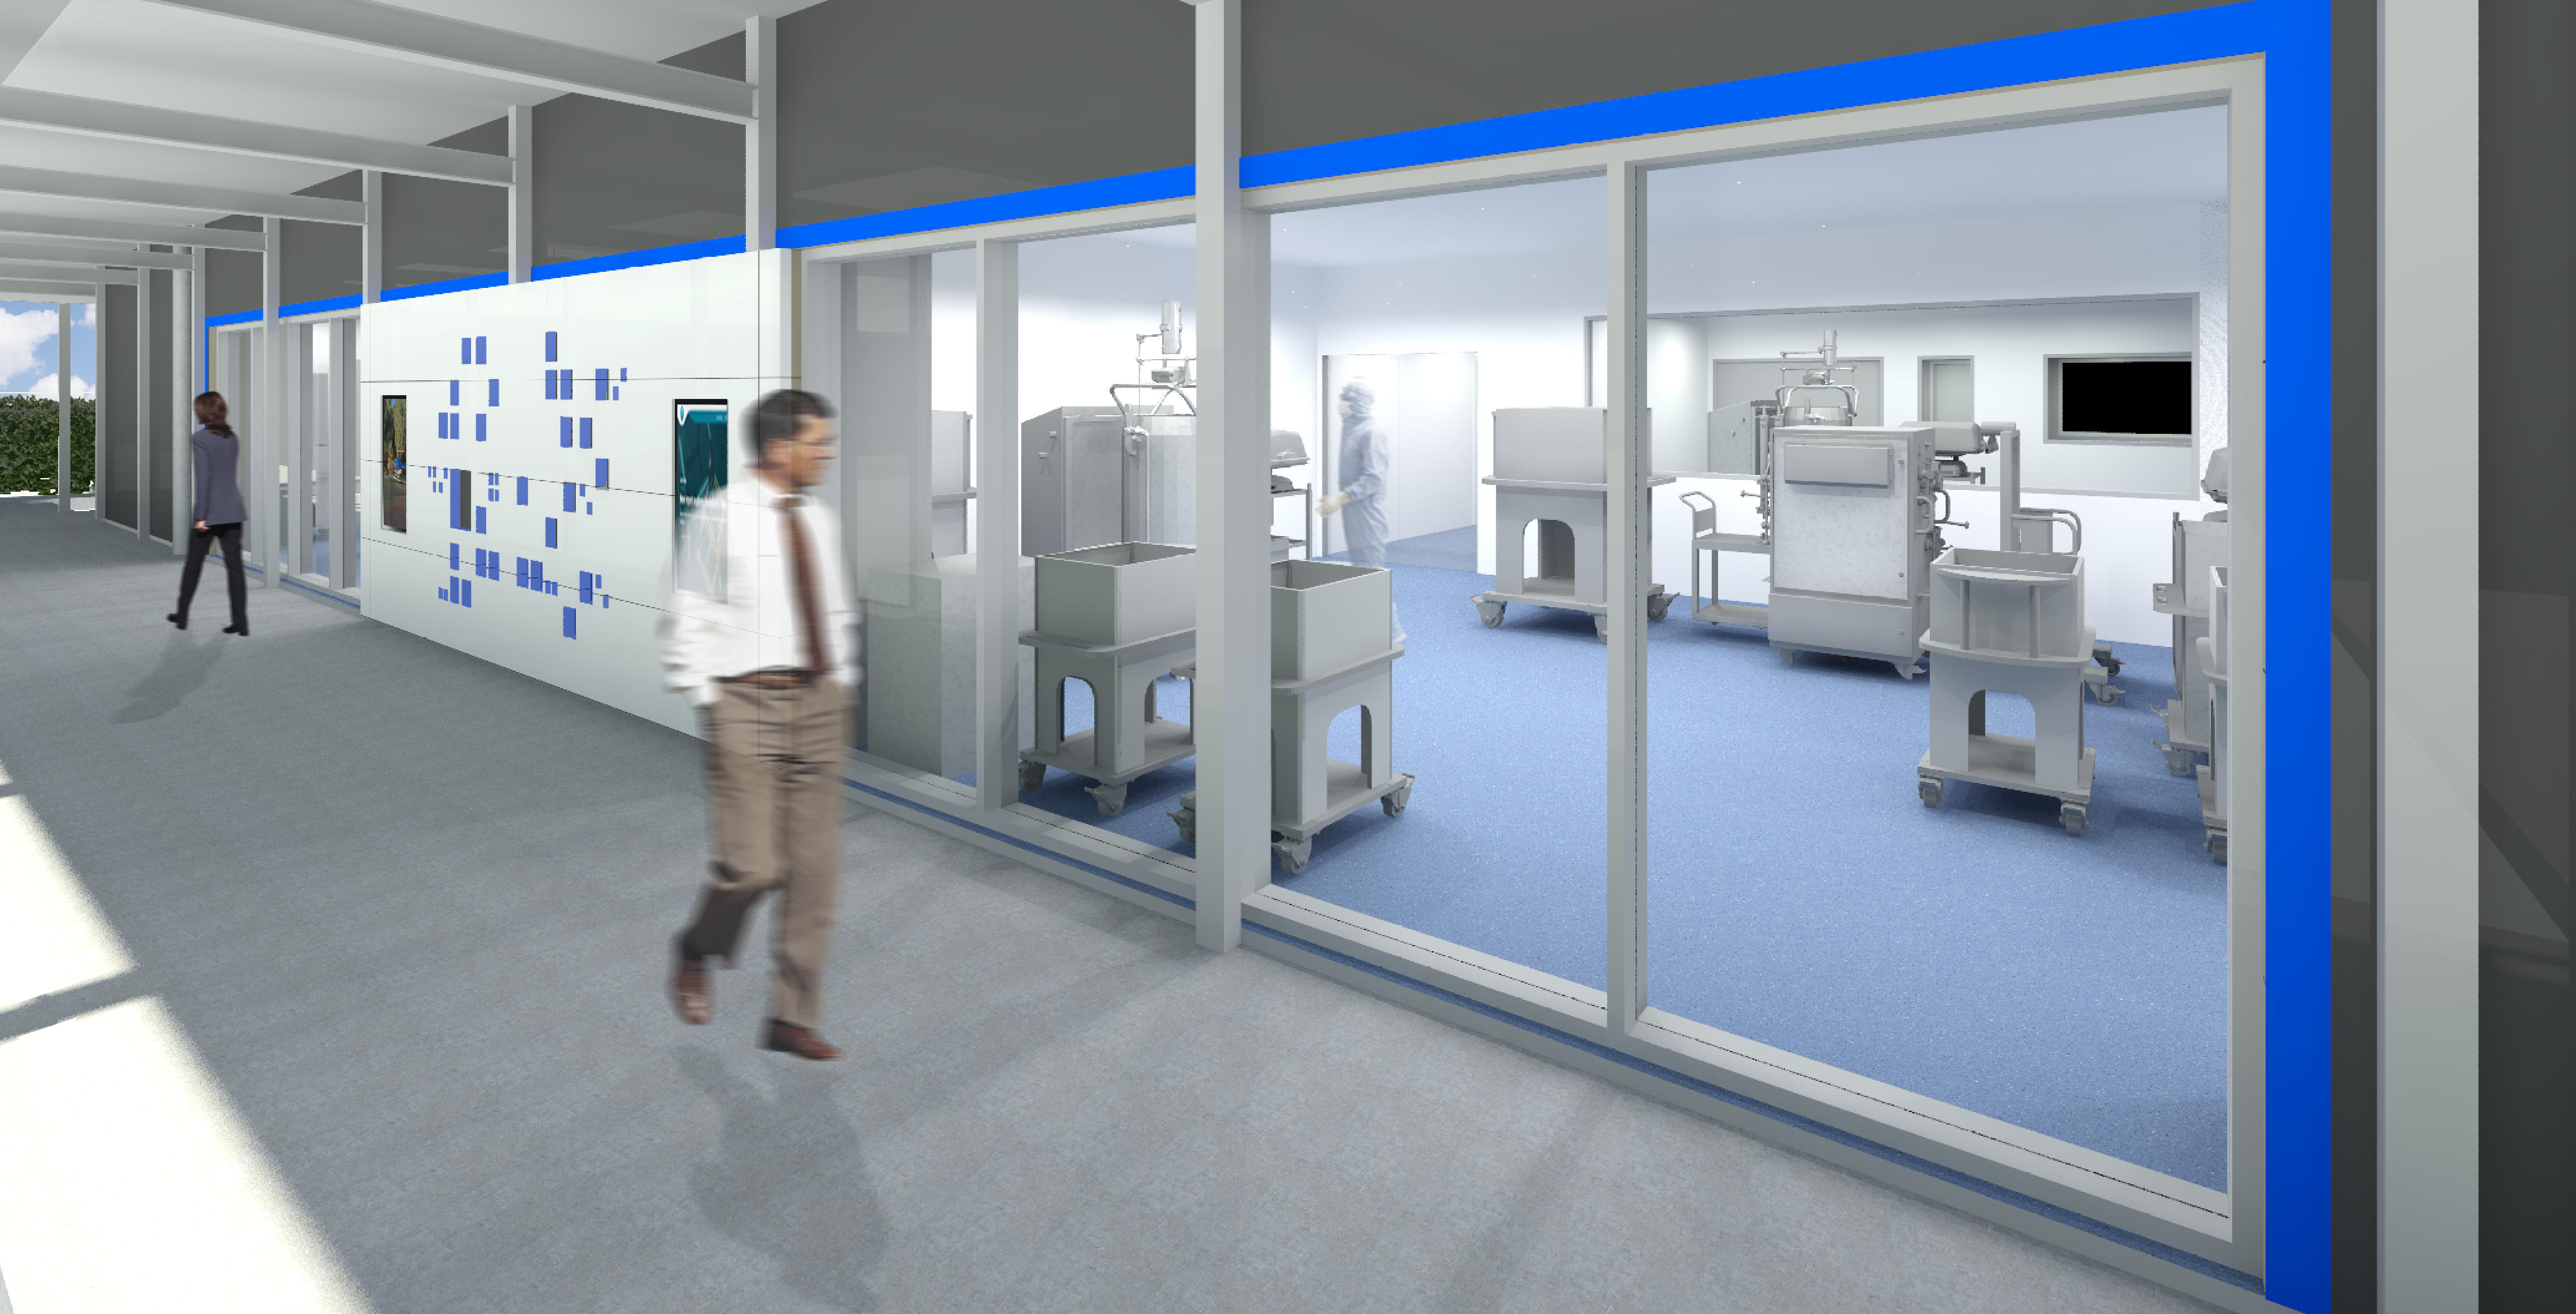 artist's impression of science laboratory, man walking in corridor alongside floor to ceiling windows with lab equipment on other side